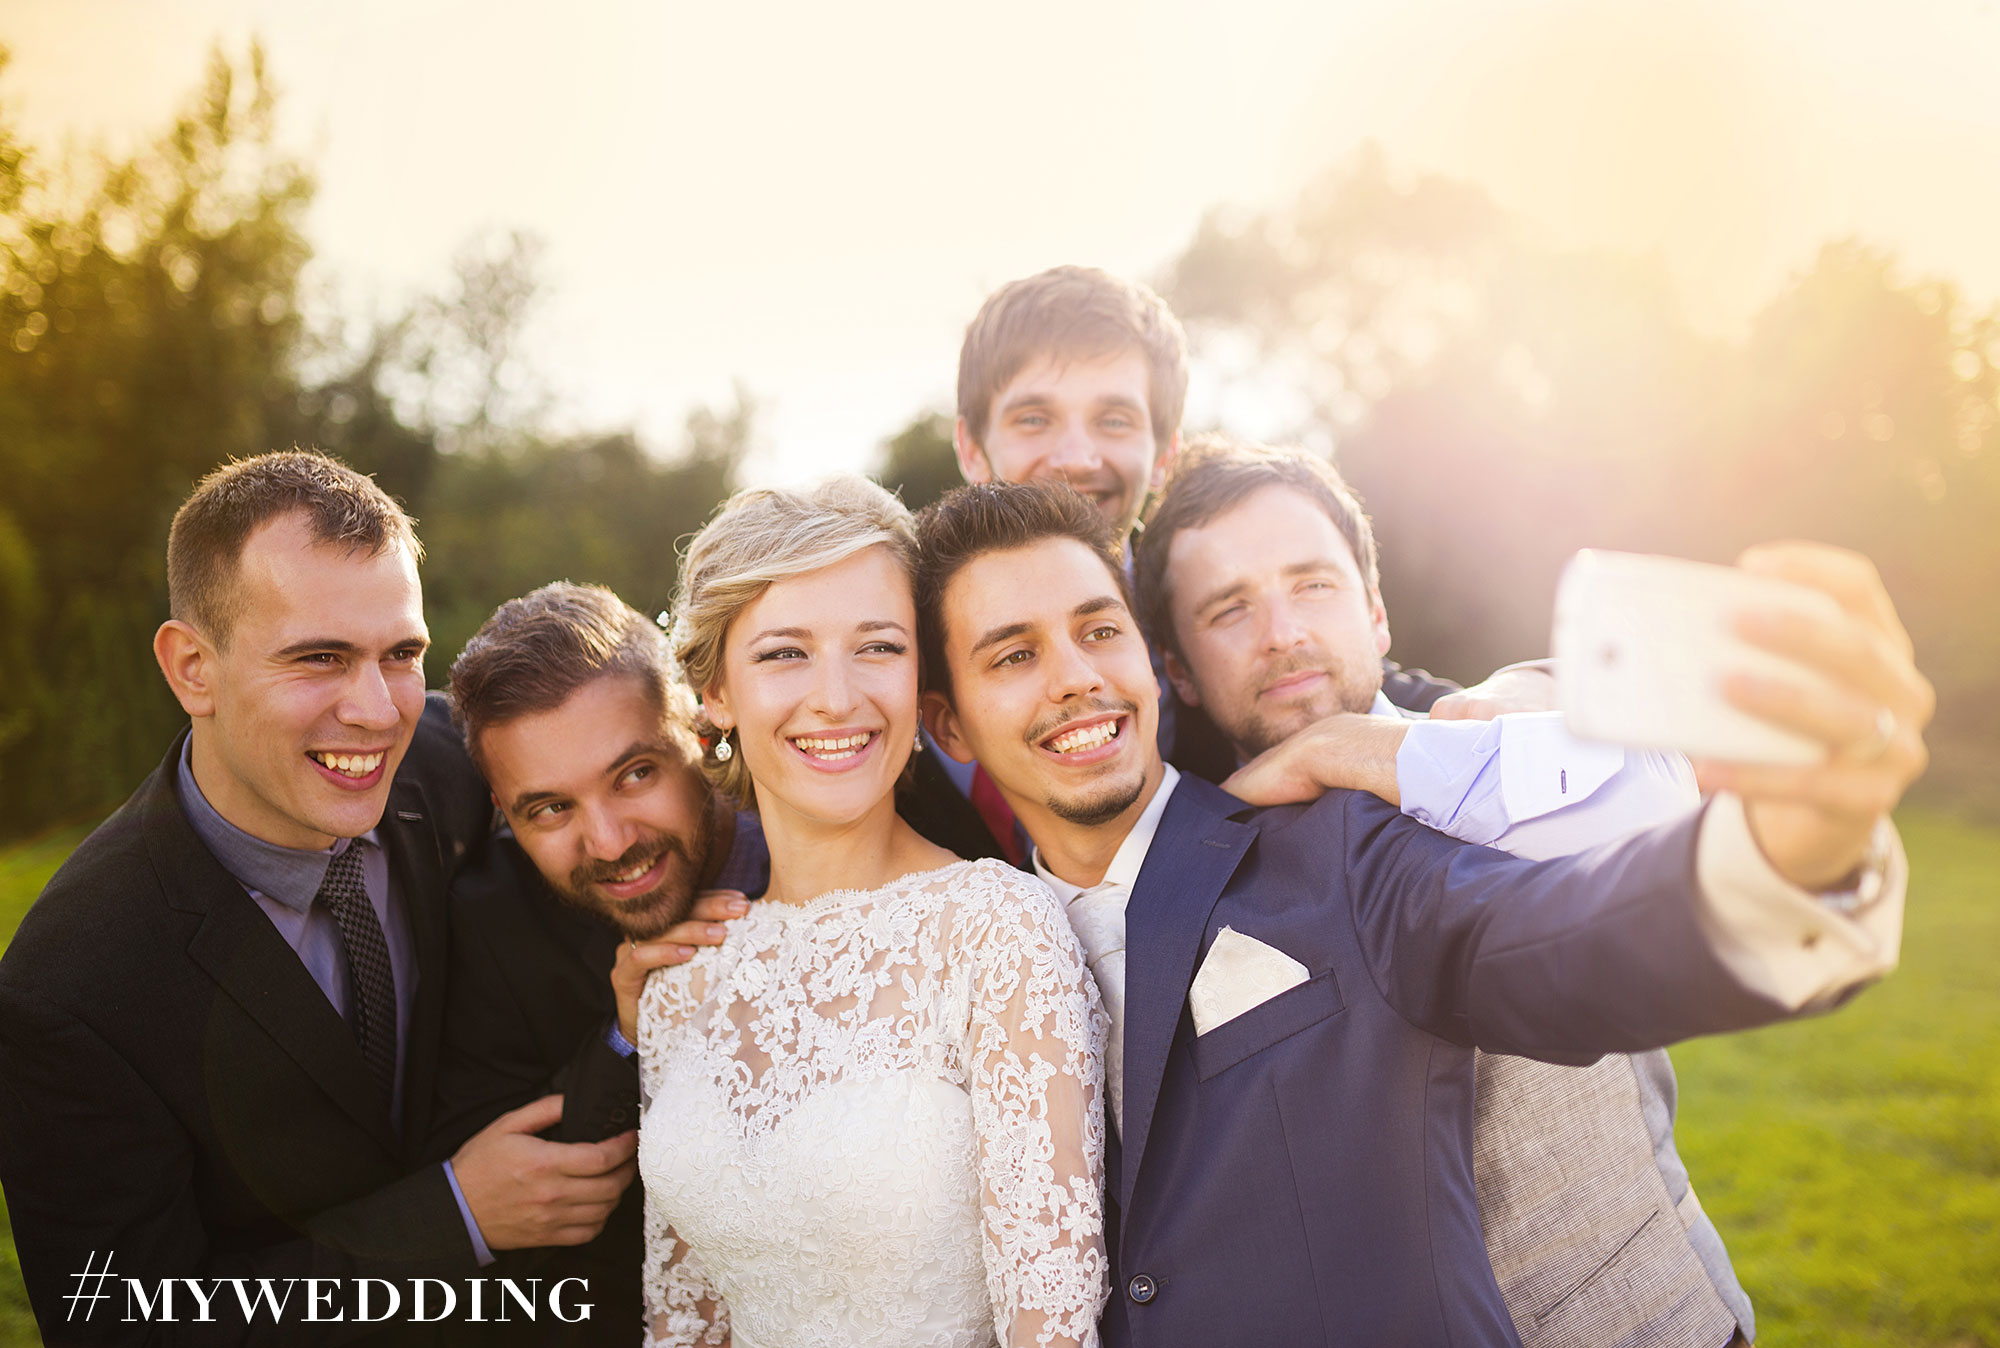 How to Create the Perfect Wedding Hashtag